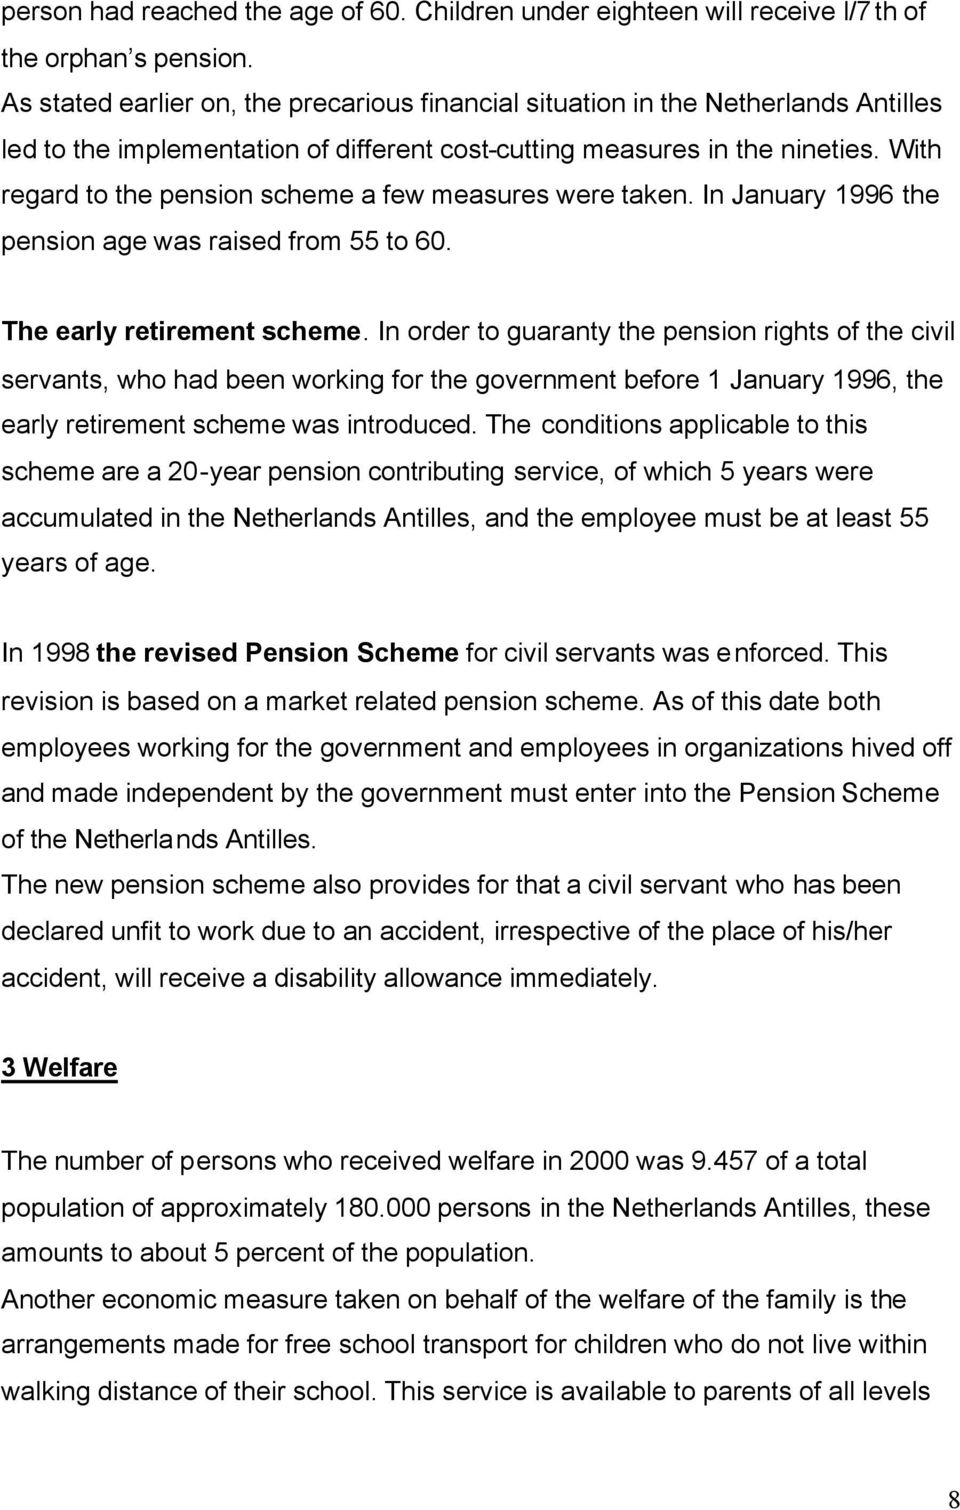 With regard to the pension scheme a few measures were taken. In January 1996 the pension age was raised from 55 to 60. The early retirement scheme.